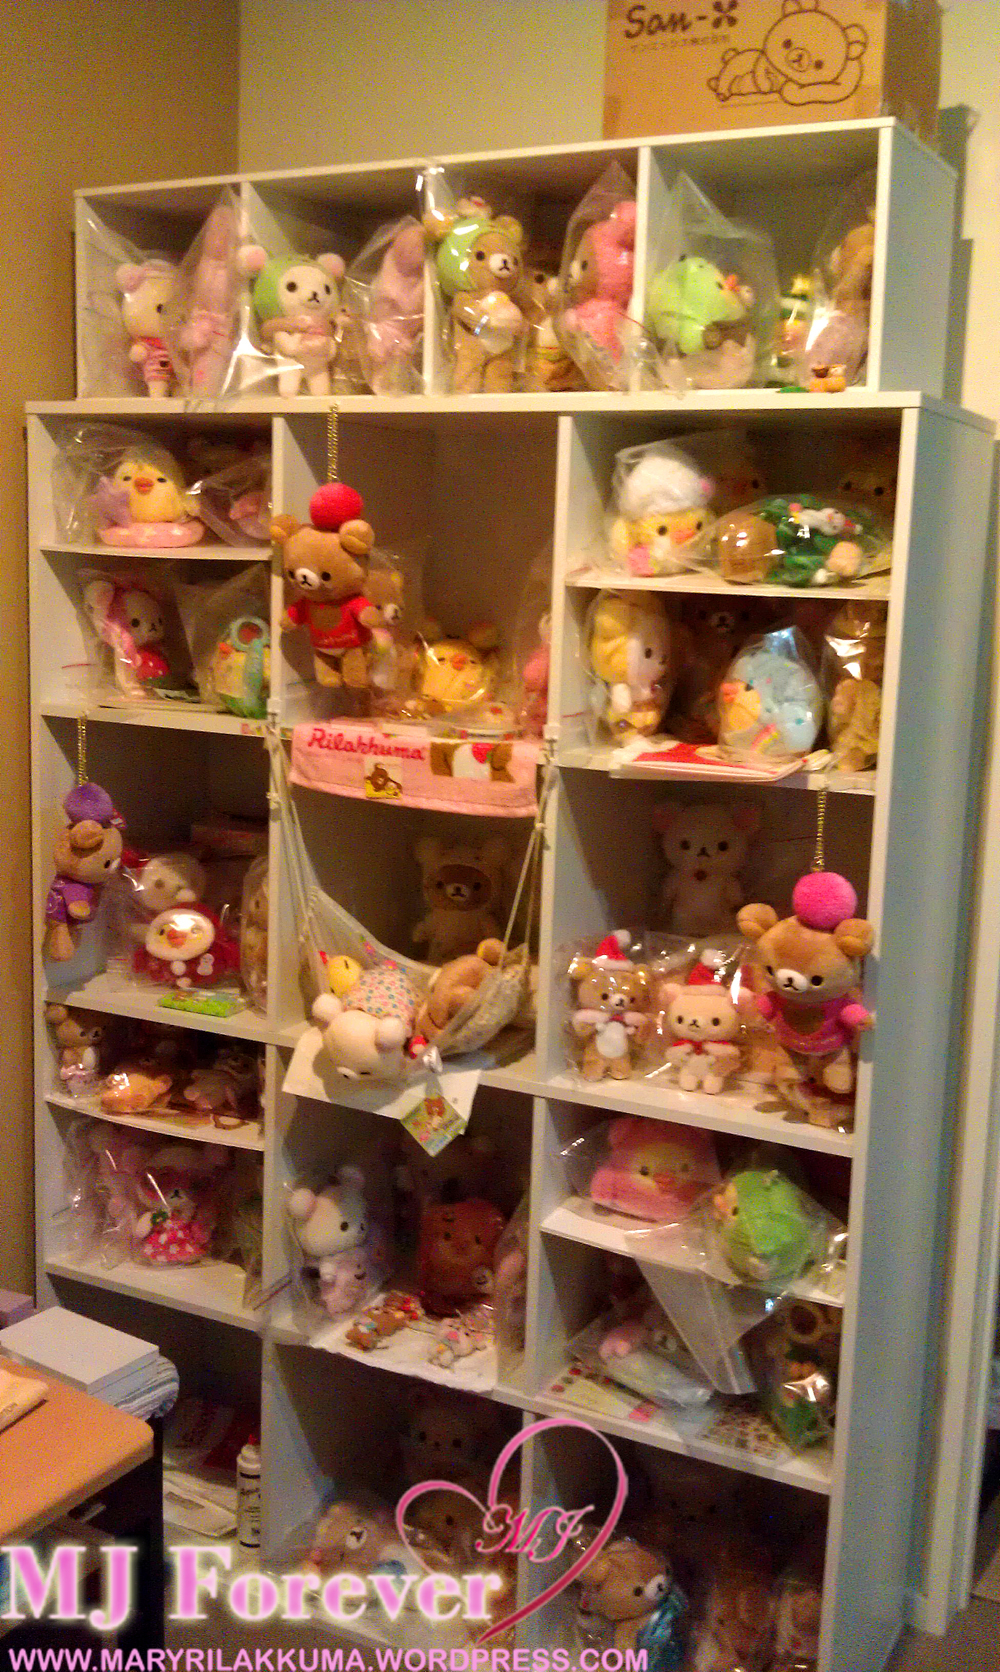 Rilakkuma collection shelf #1